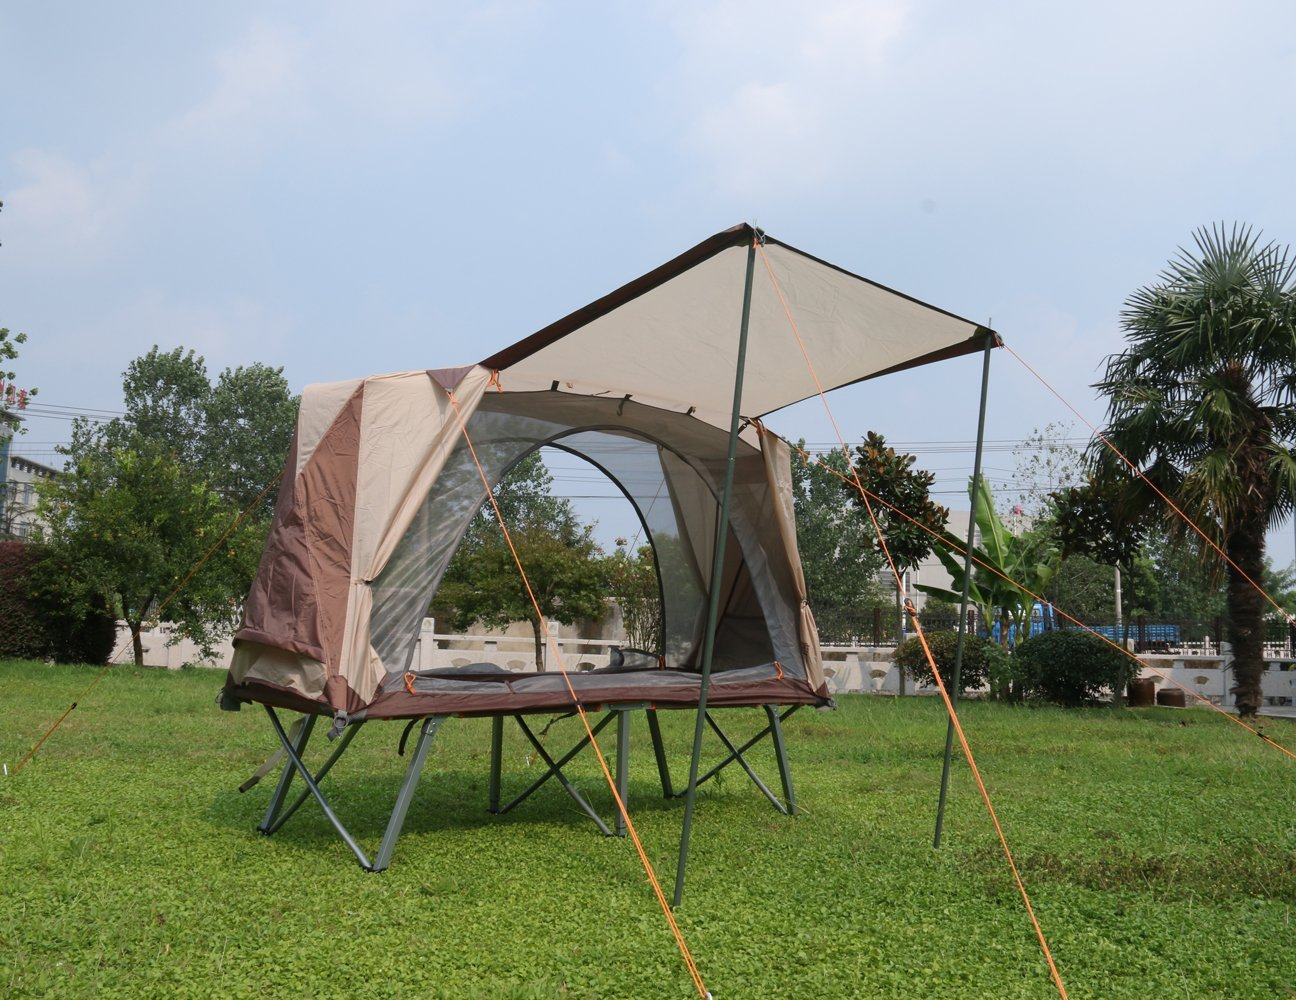 Compact Protable Tent Cot 1 Person Camping Cot Single